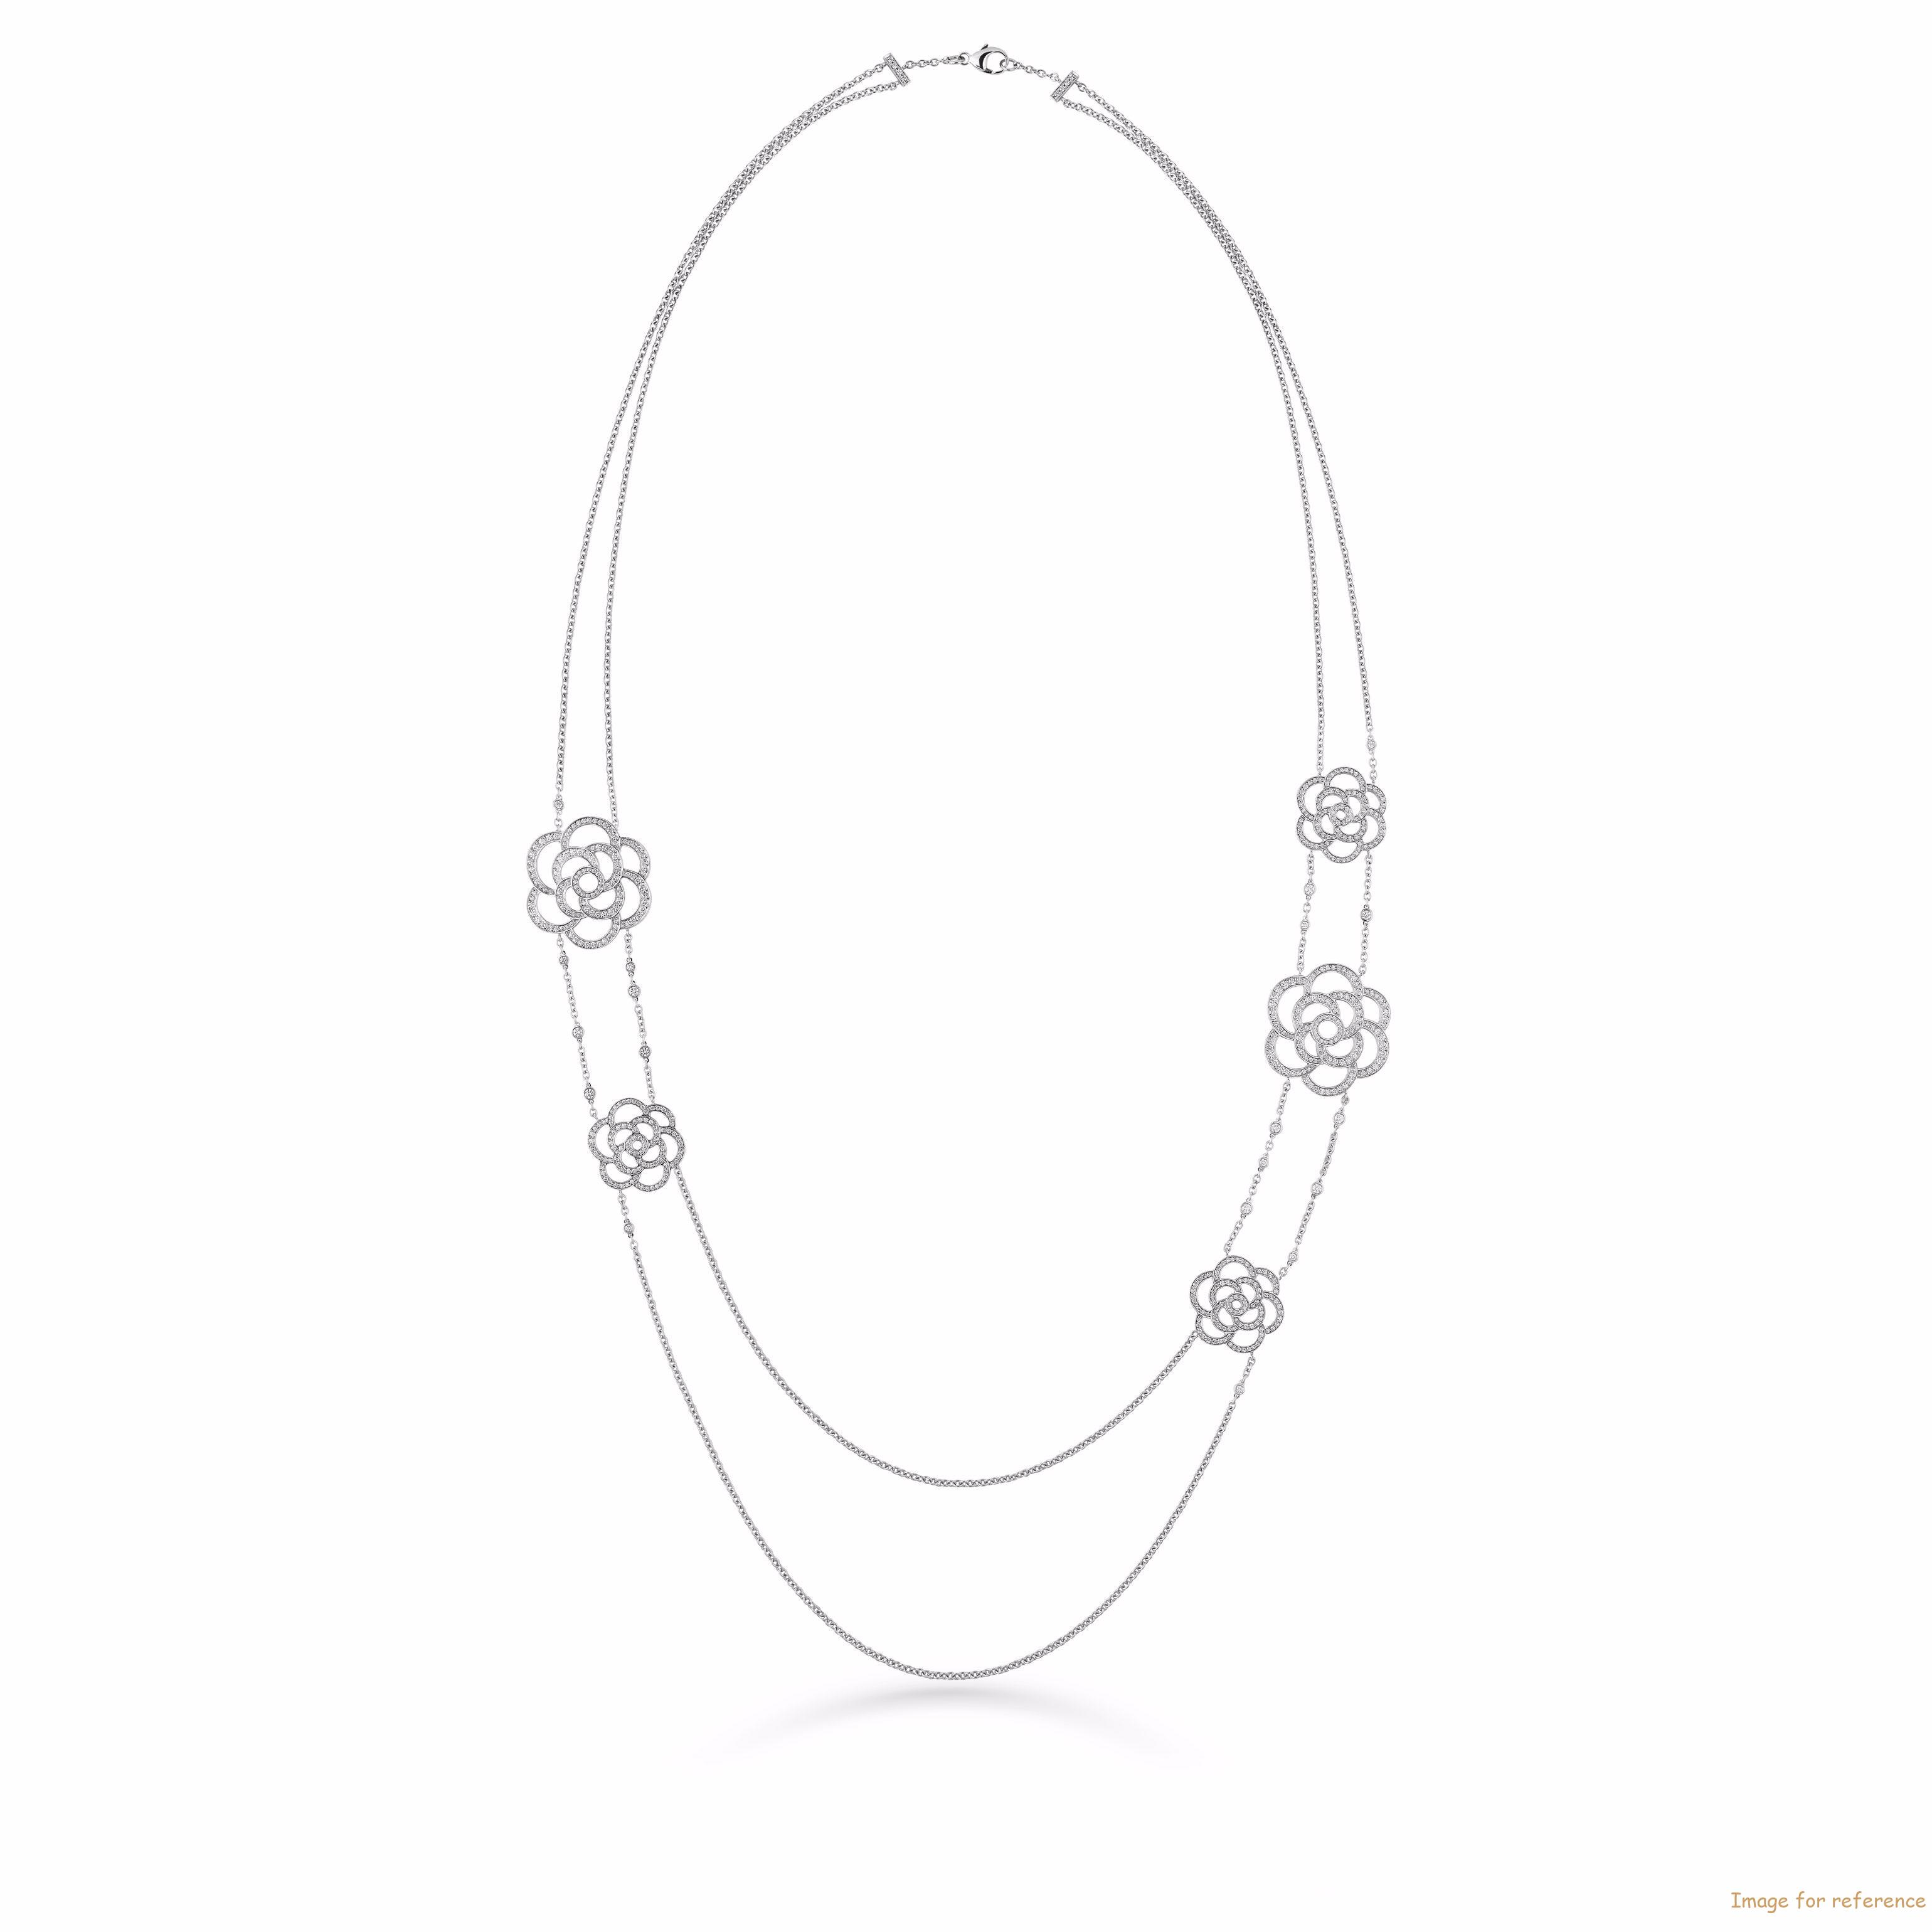 two-row necklace